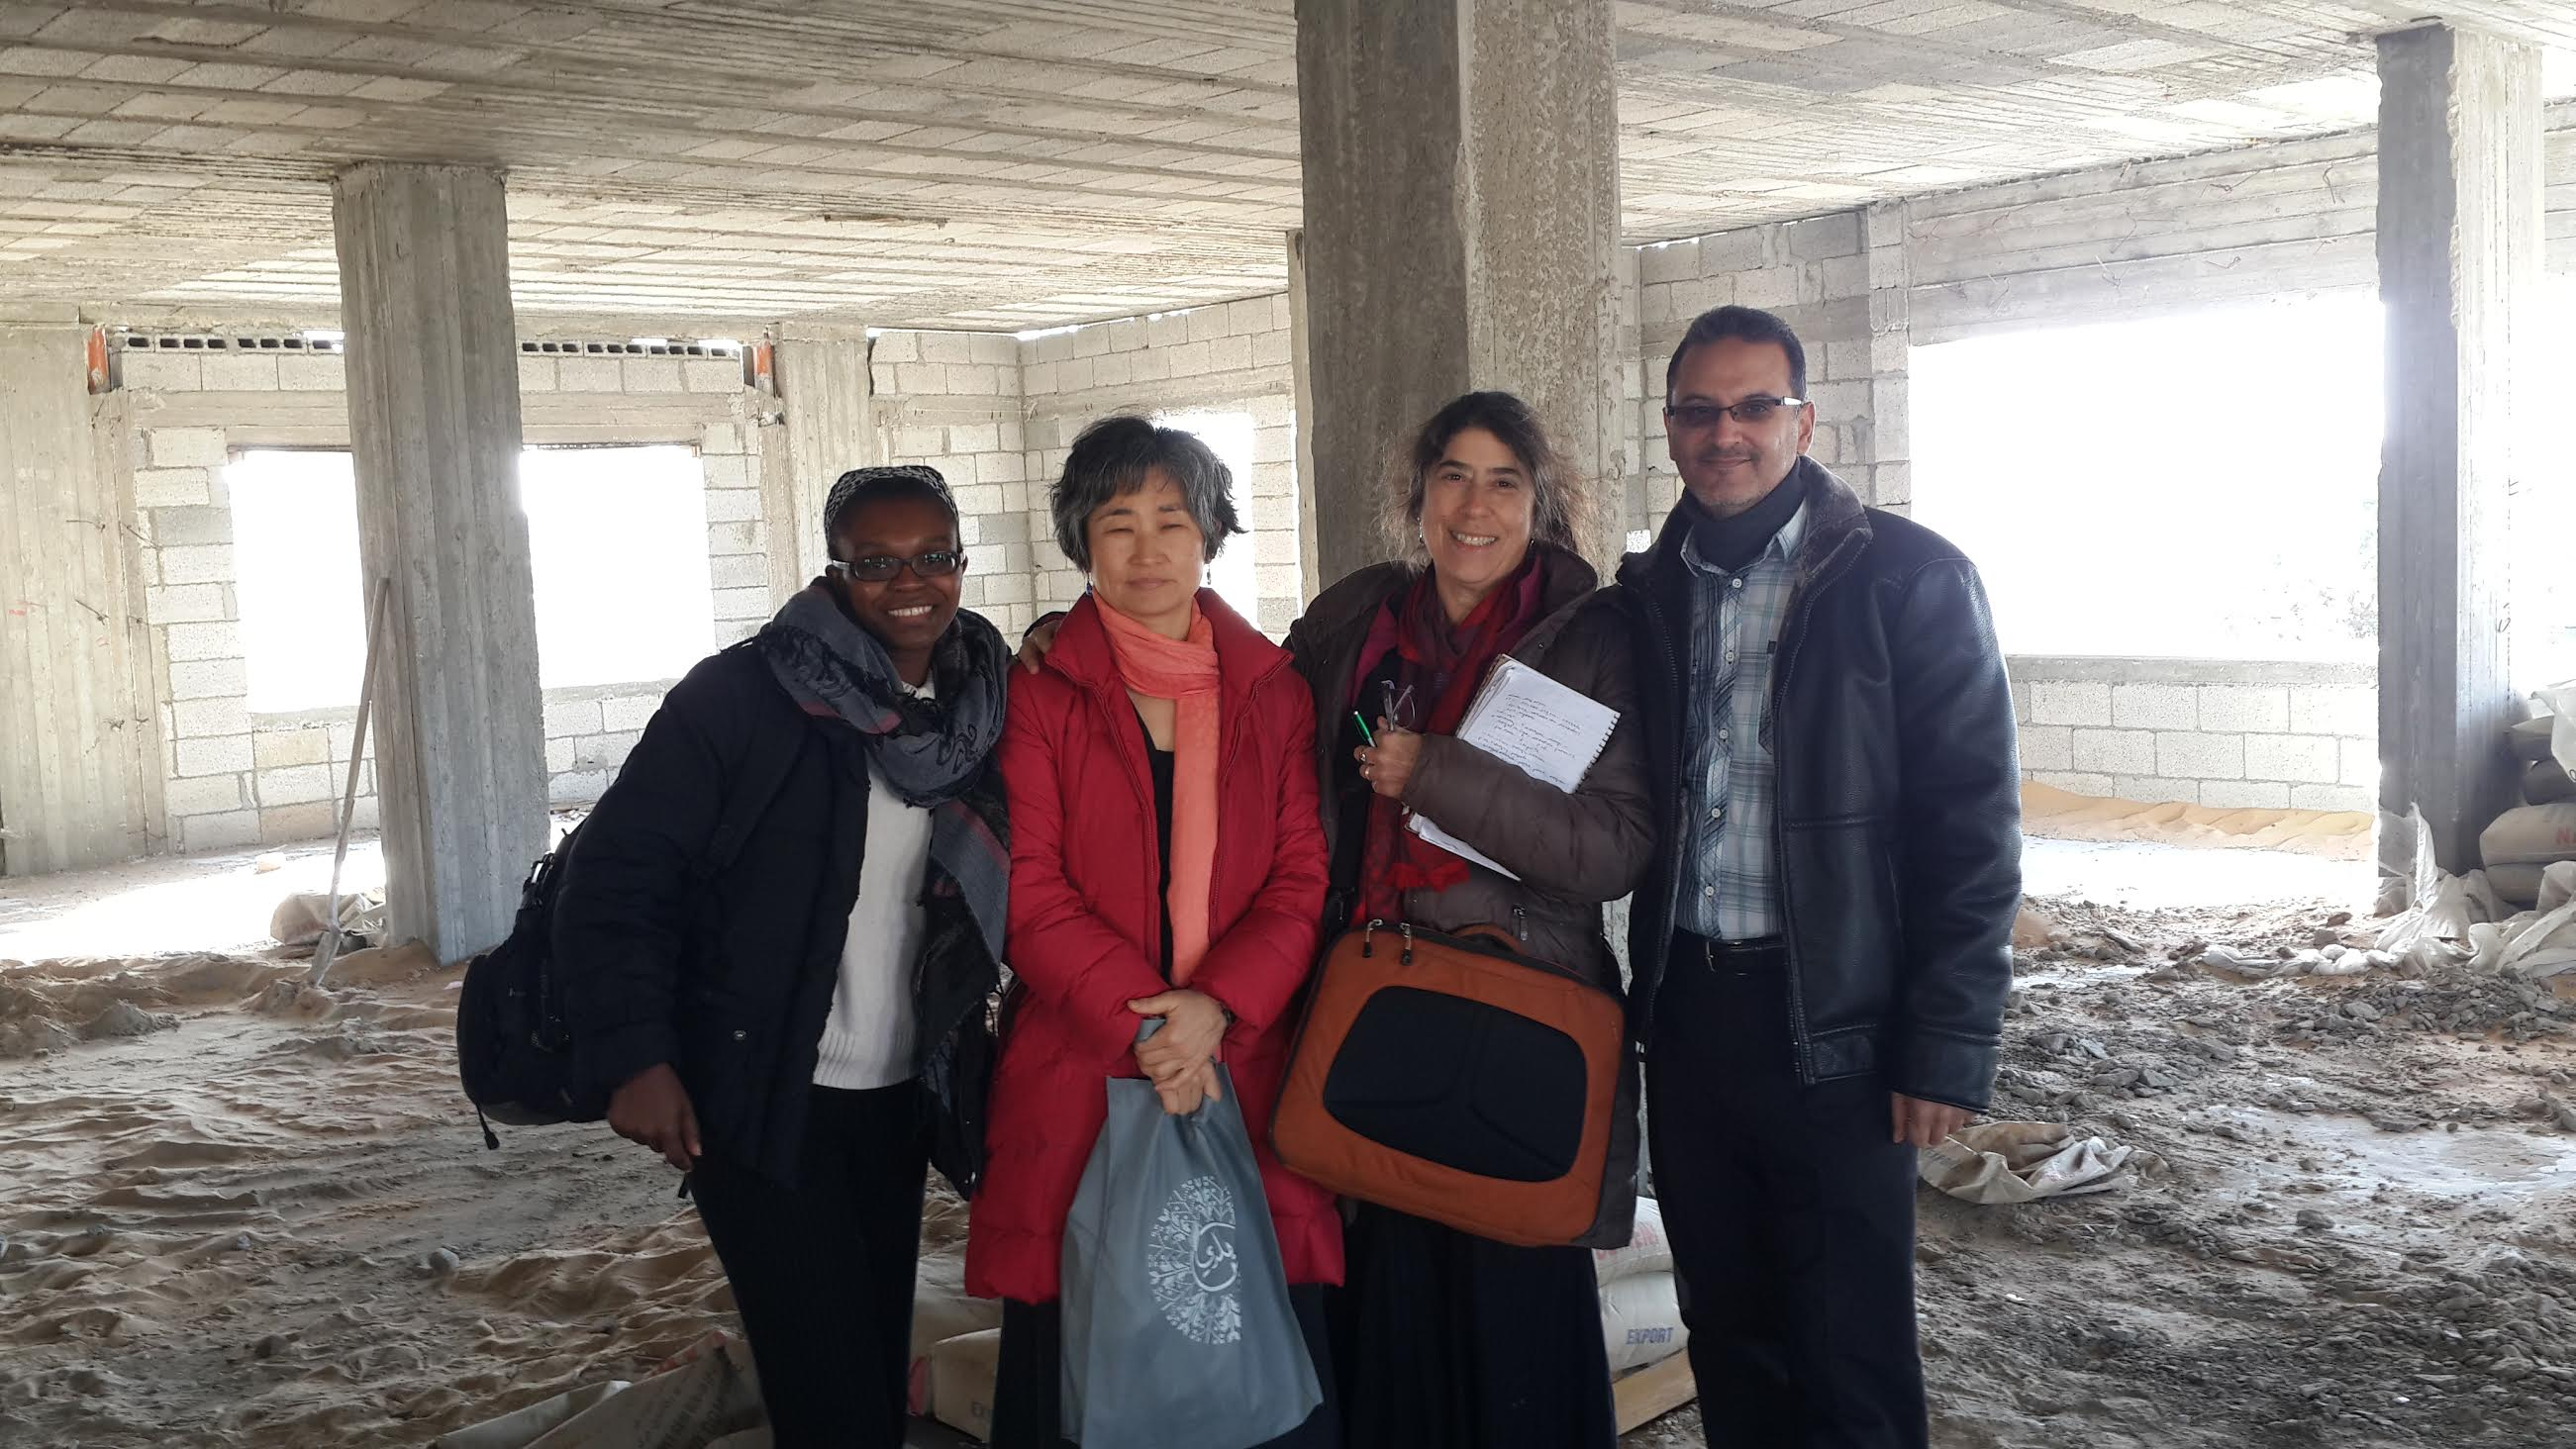 (L-R) Mina Remy, Chung-Wha Hong, GMCF Board member Alice Rothschild and Dr. Abu Jamei in Gaza in 2017